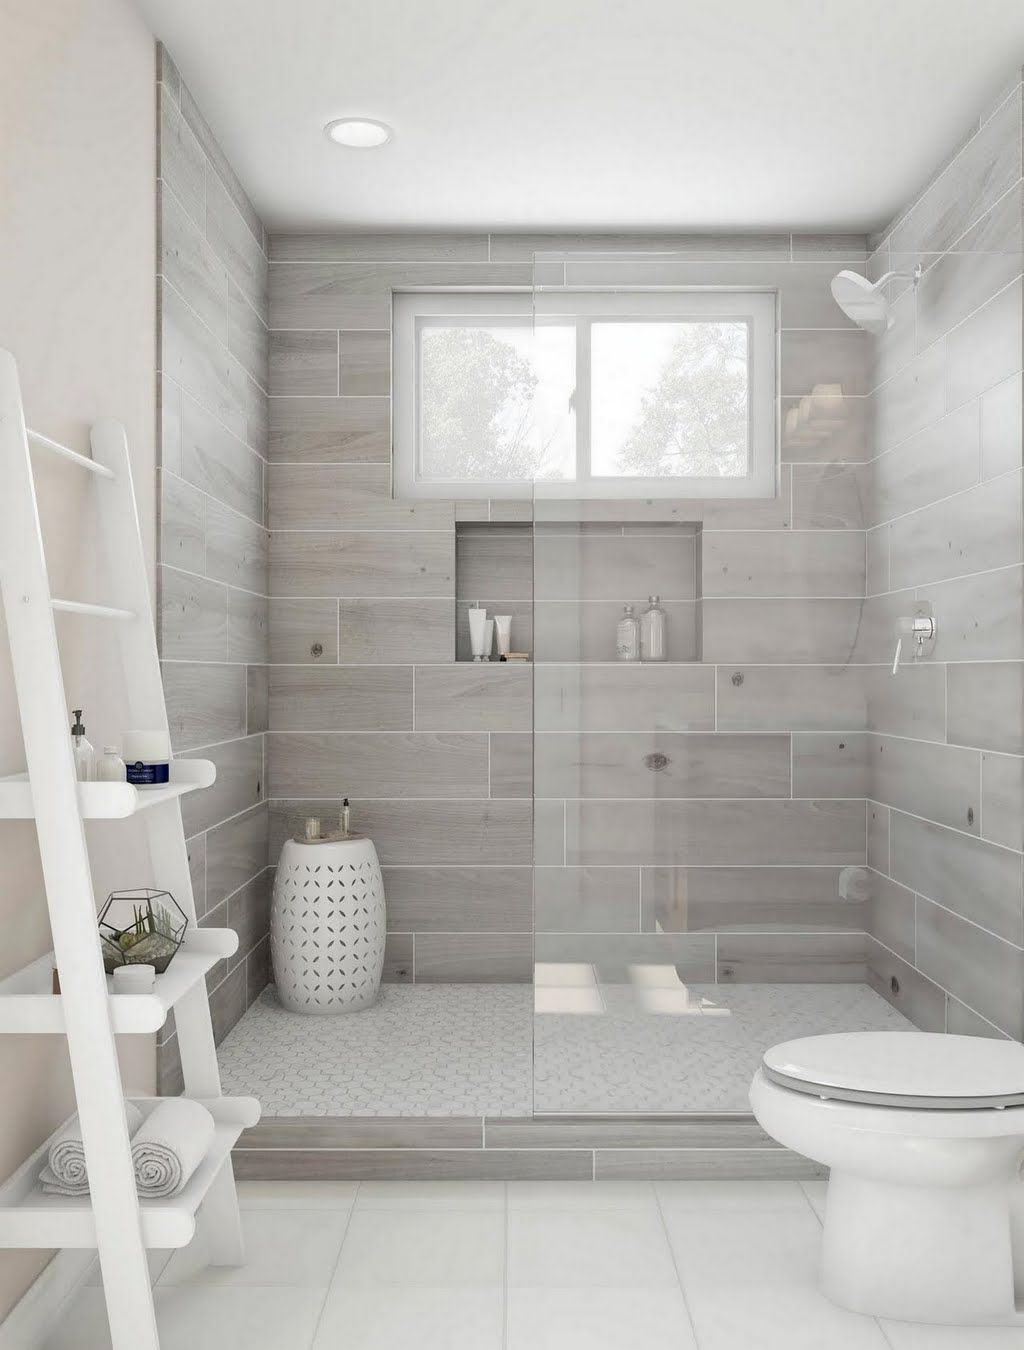 34 Popular And Stylish Small Master Bathroom Remodel Ideas Hmdcrtn